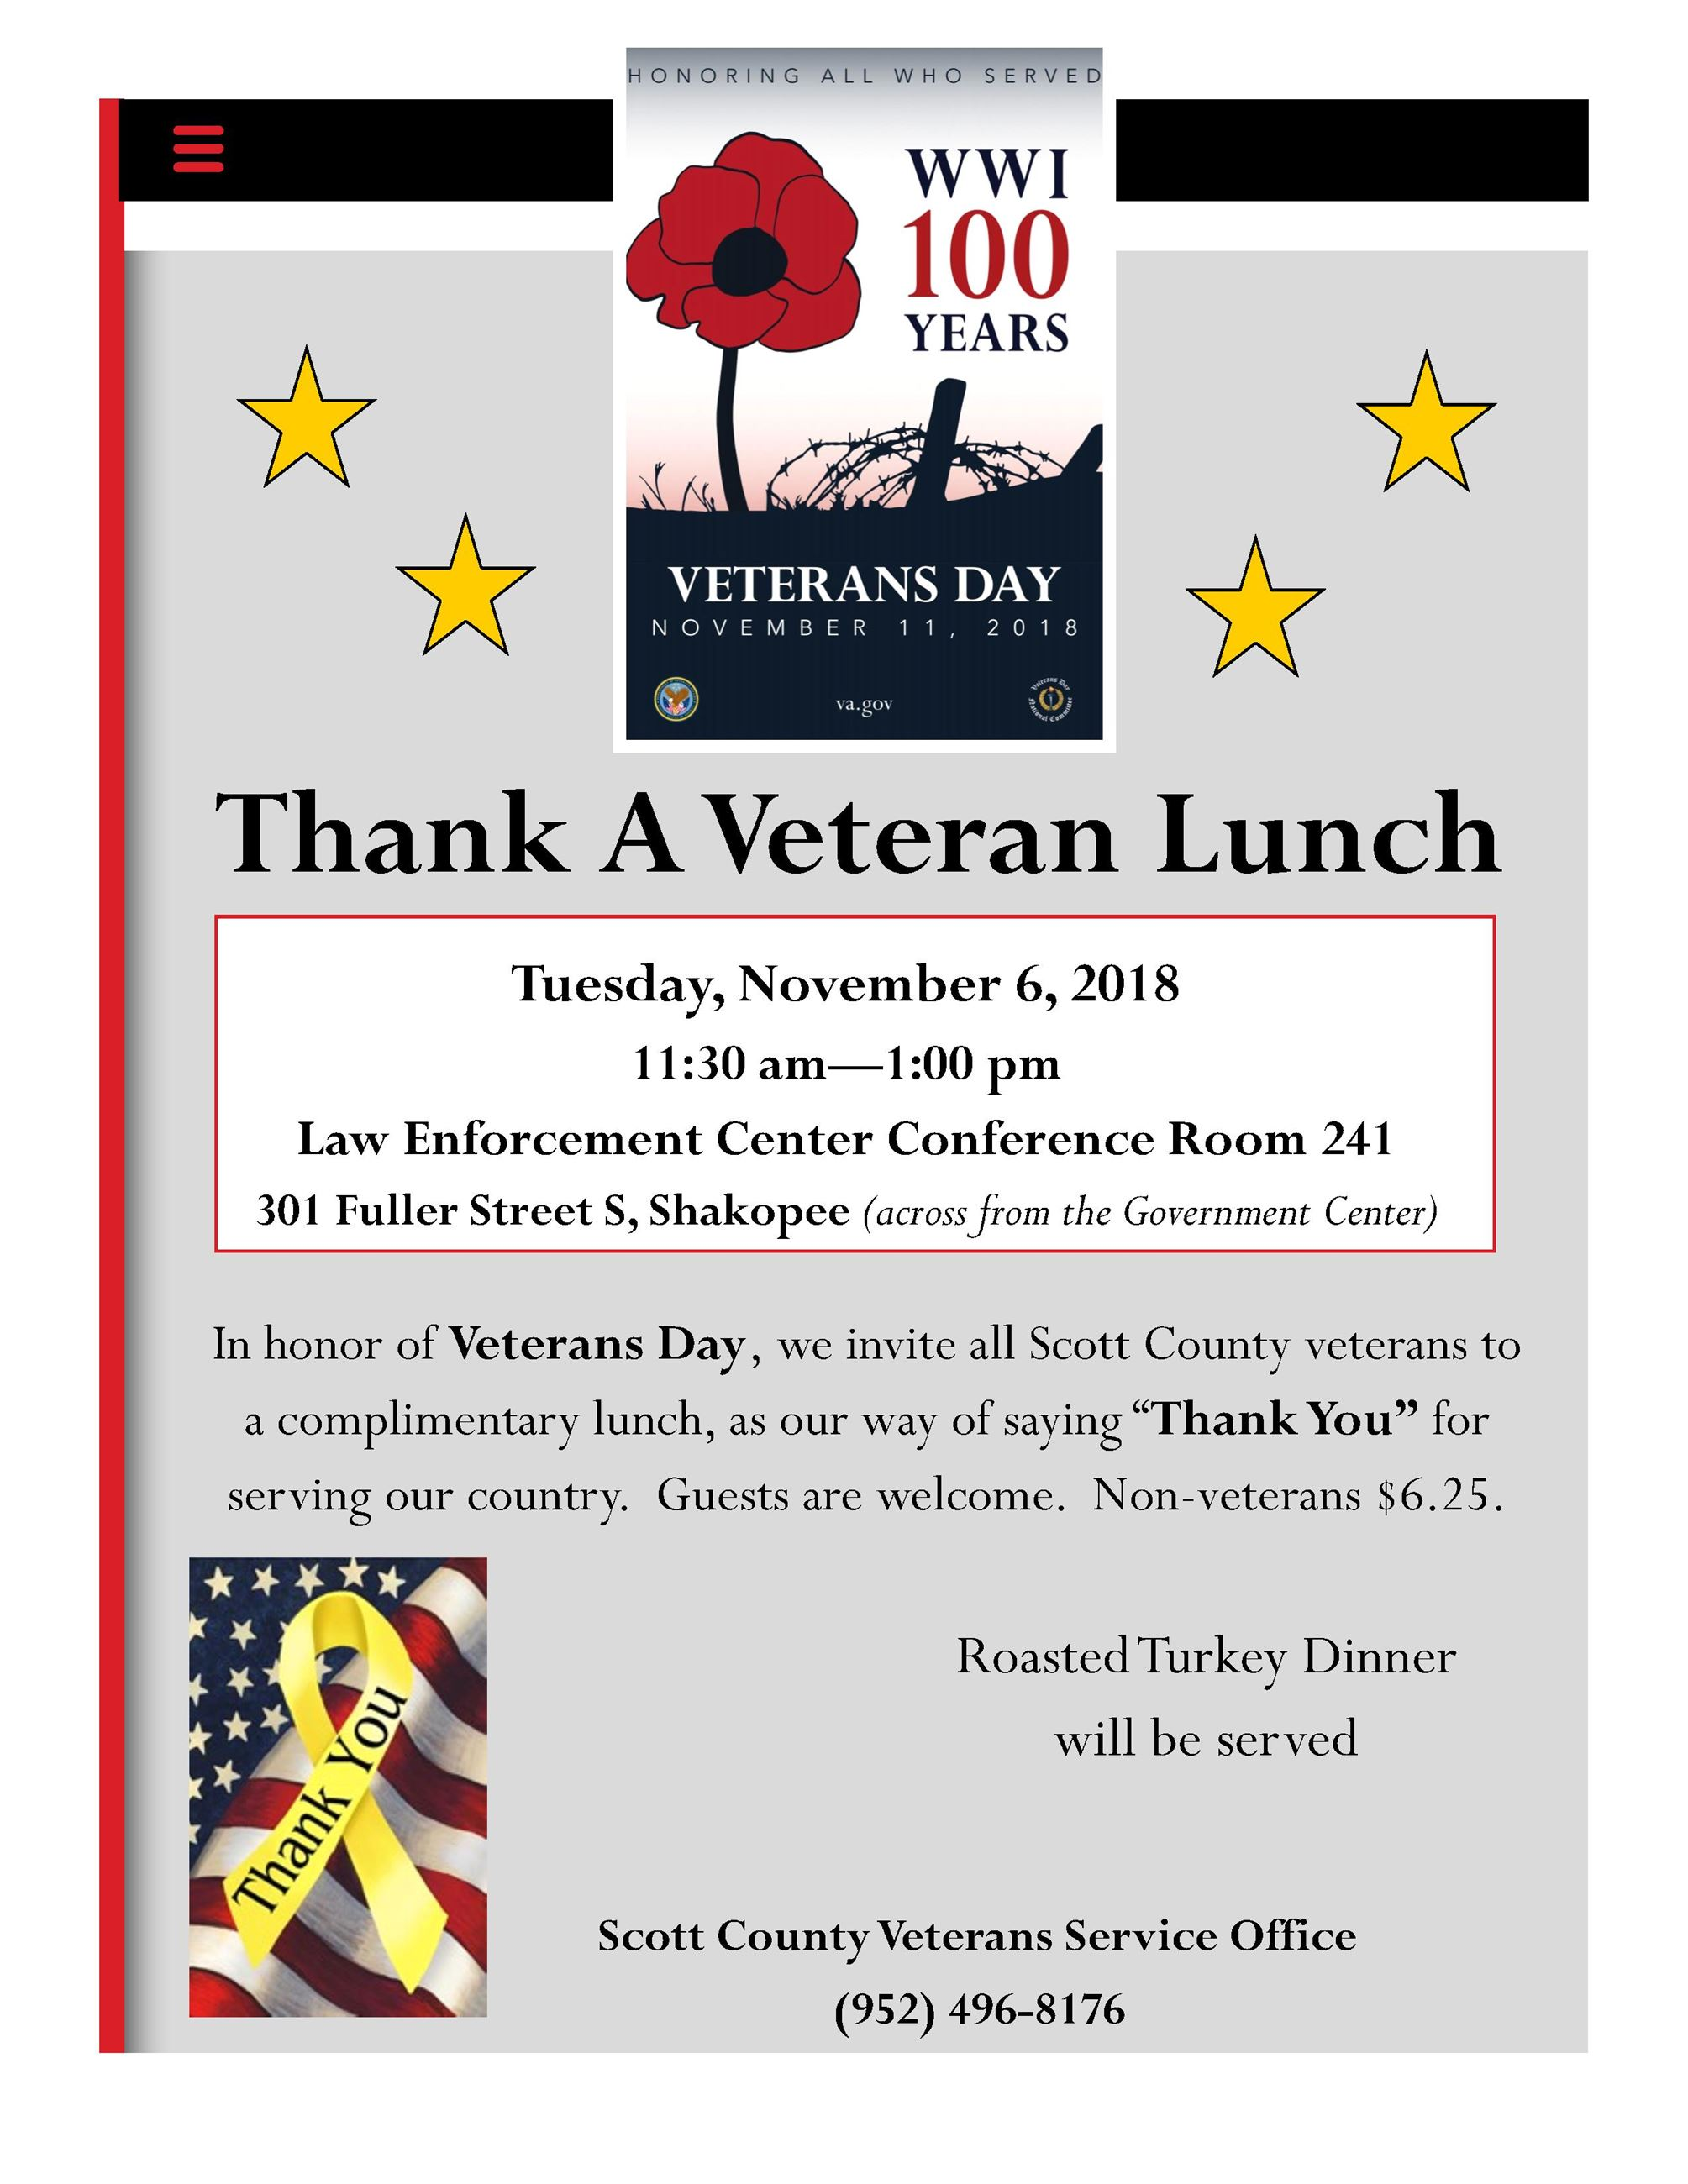 Thank A Veteran Lunch flyer posts 2018